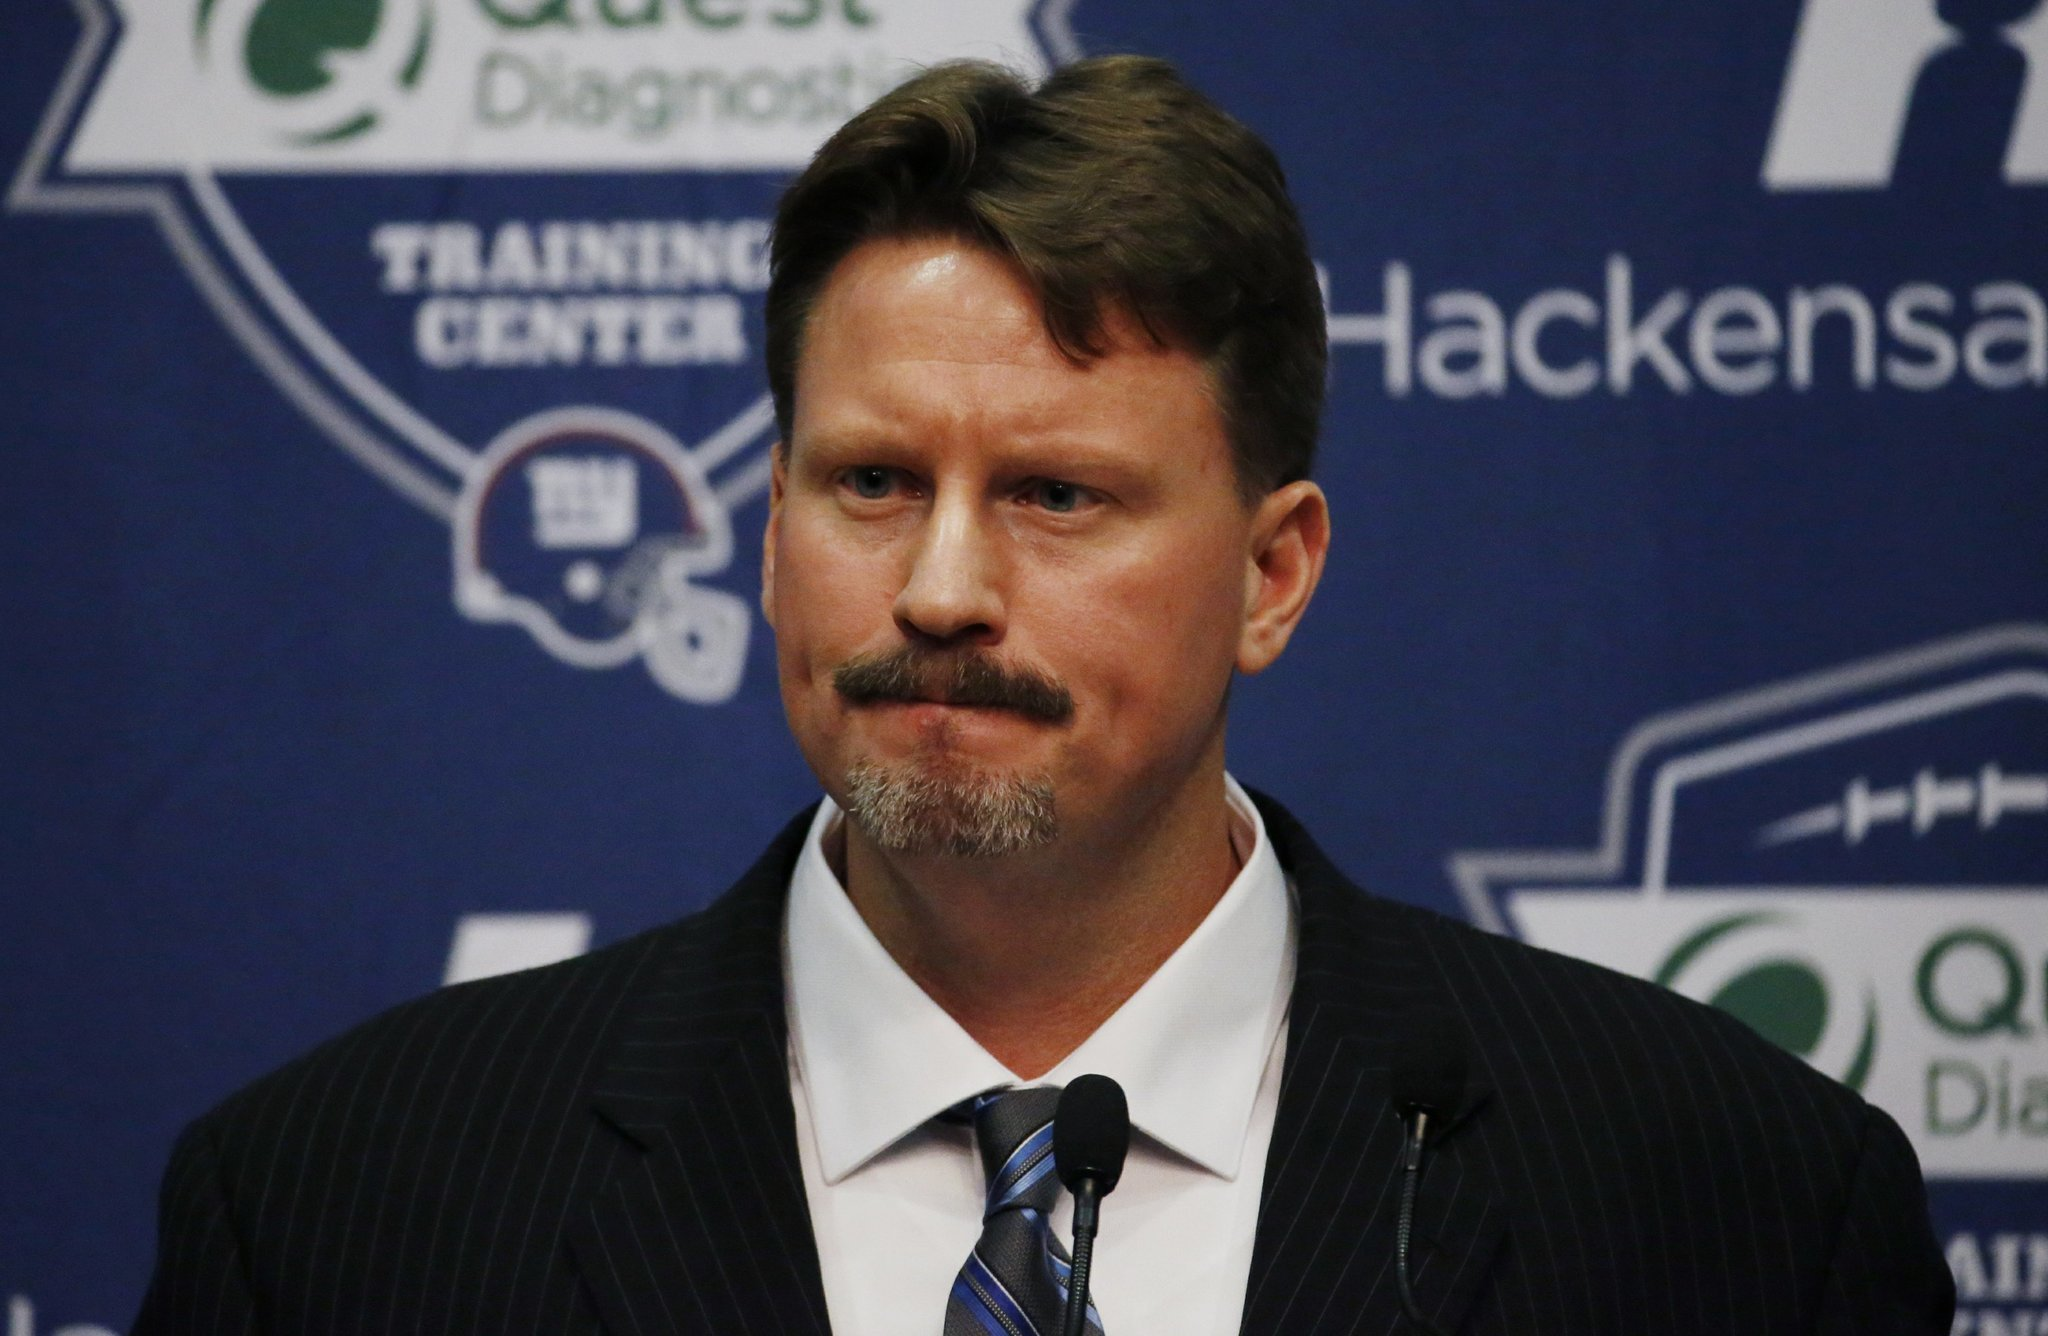 Ex-Giants head coach Ben McAdoo lands with Jaguars as QB coach